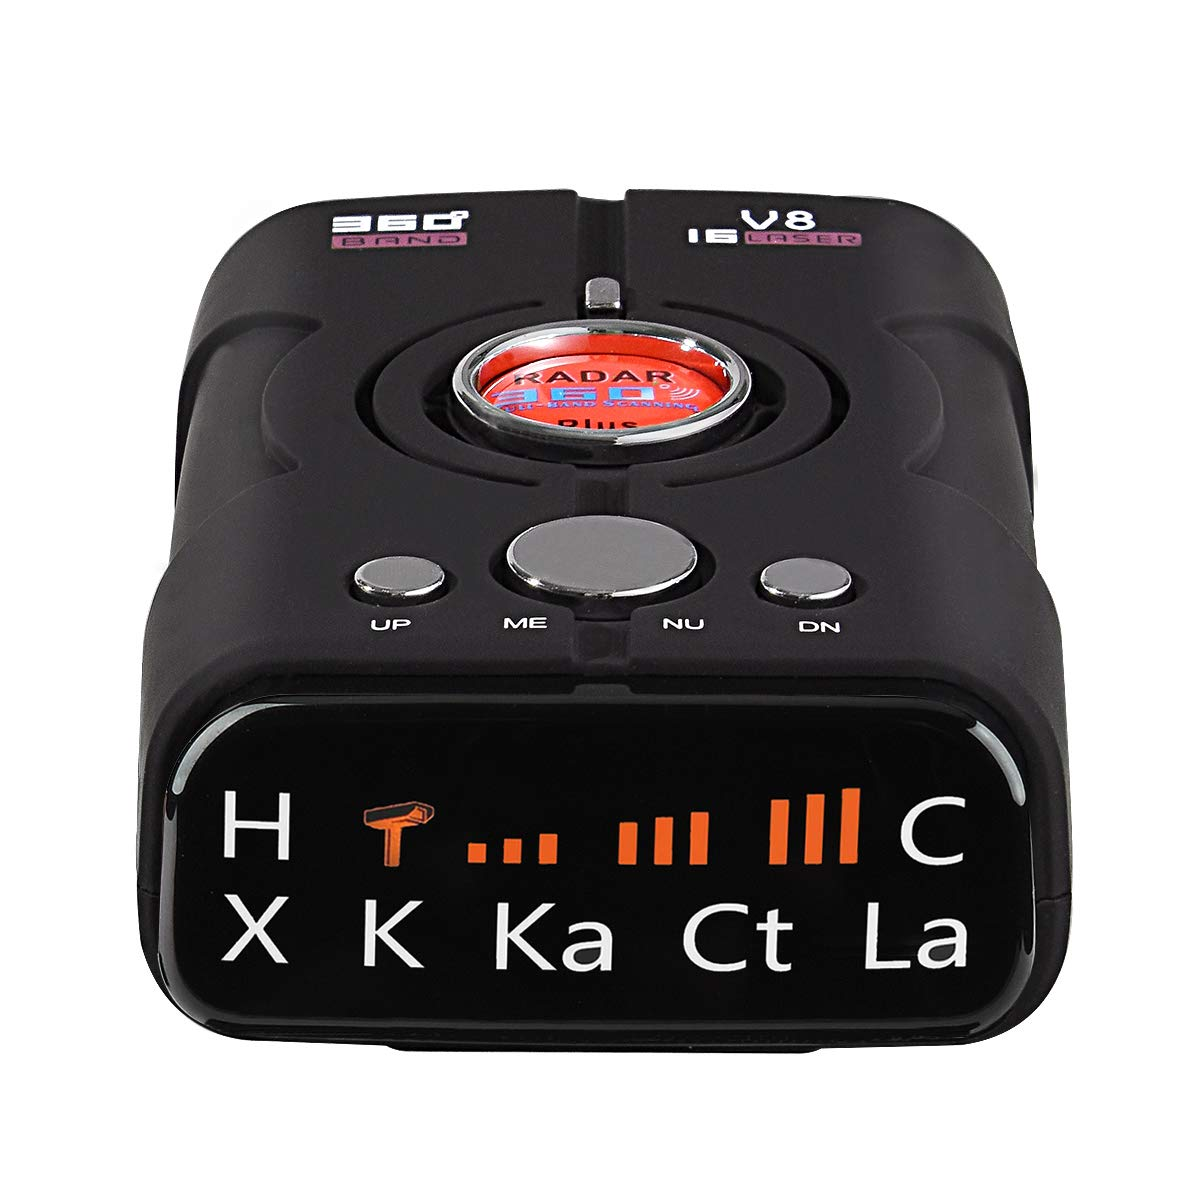 Laser Radar Detector with 360 Degree Detection Voice Alert and Speed Alarm System, City/Highway Mode